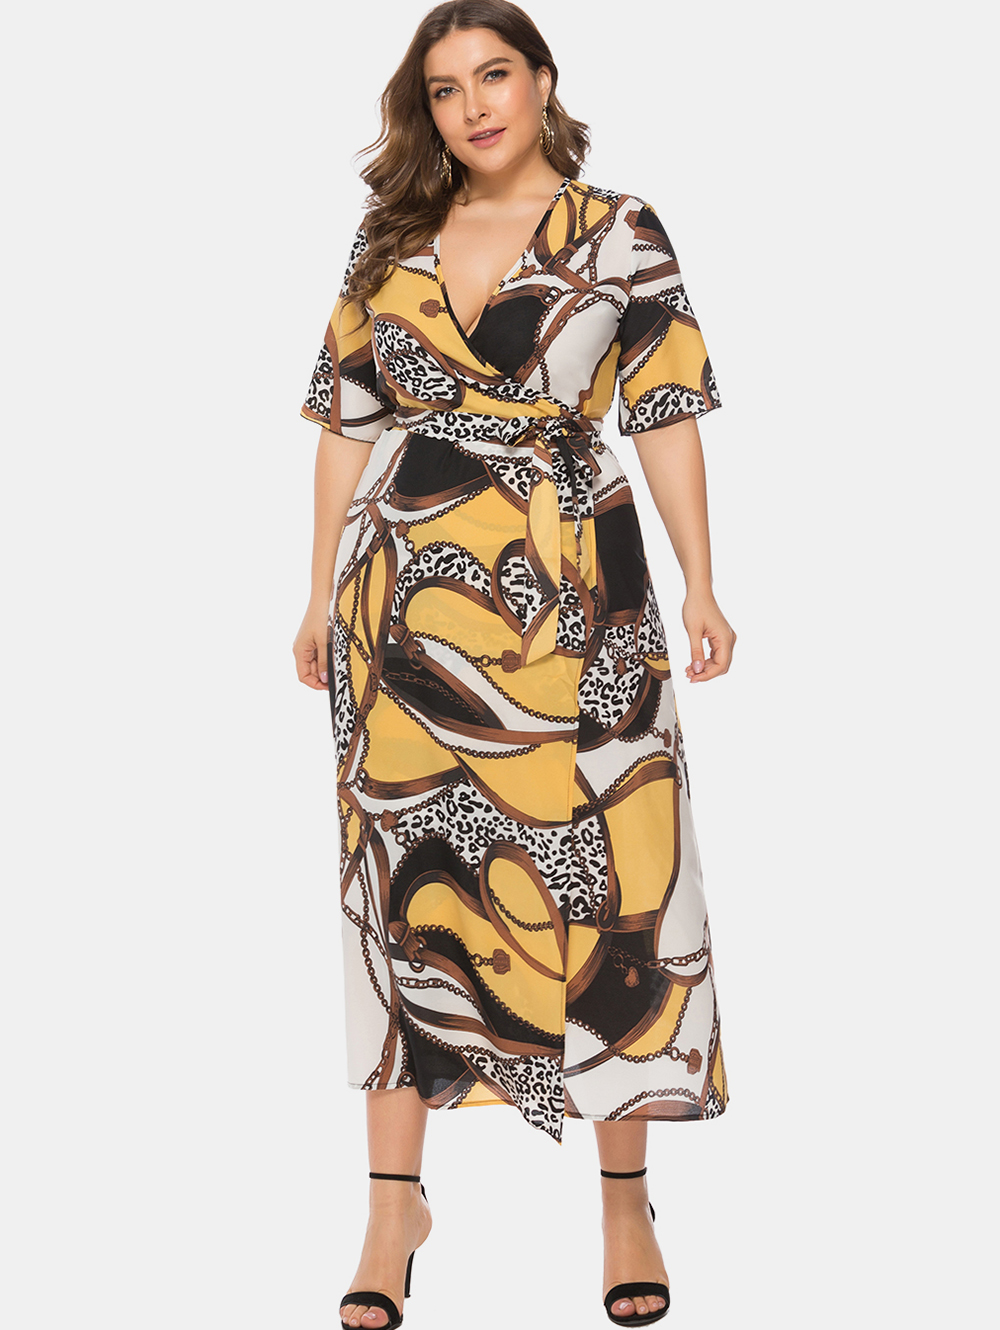 US $14.81 48% OFF|Wipalo Women Plus Size 6XL Chain Print Wrap Maxi Dress  Plunging Neck Short Sleeves Belted Casual Split Dress Big Size Vestidos-in  ...